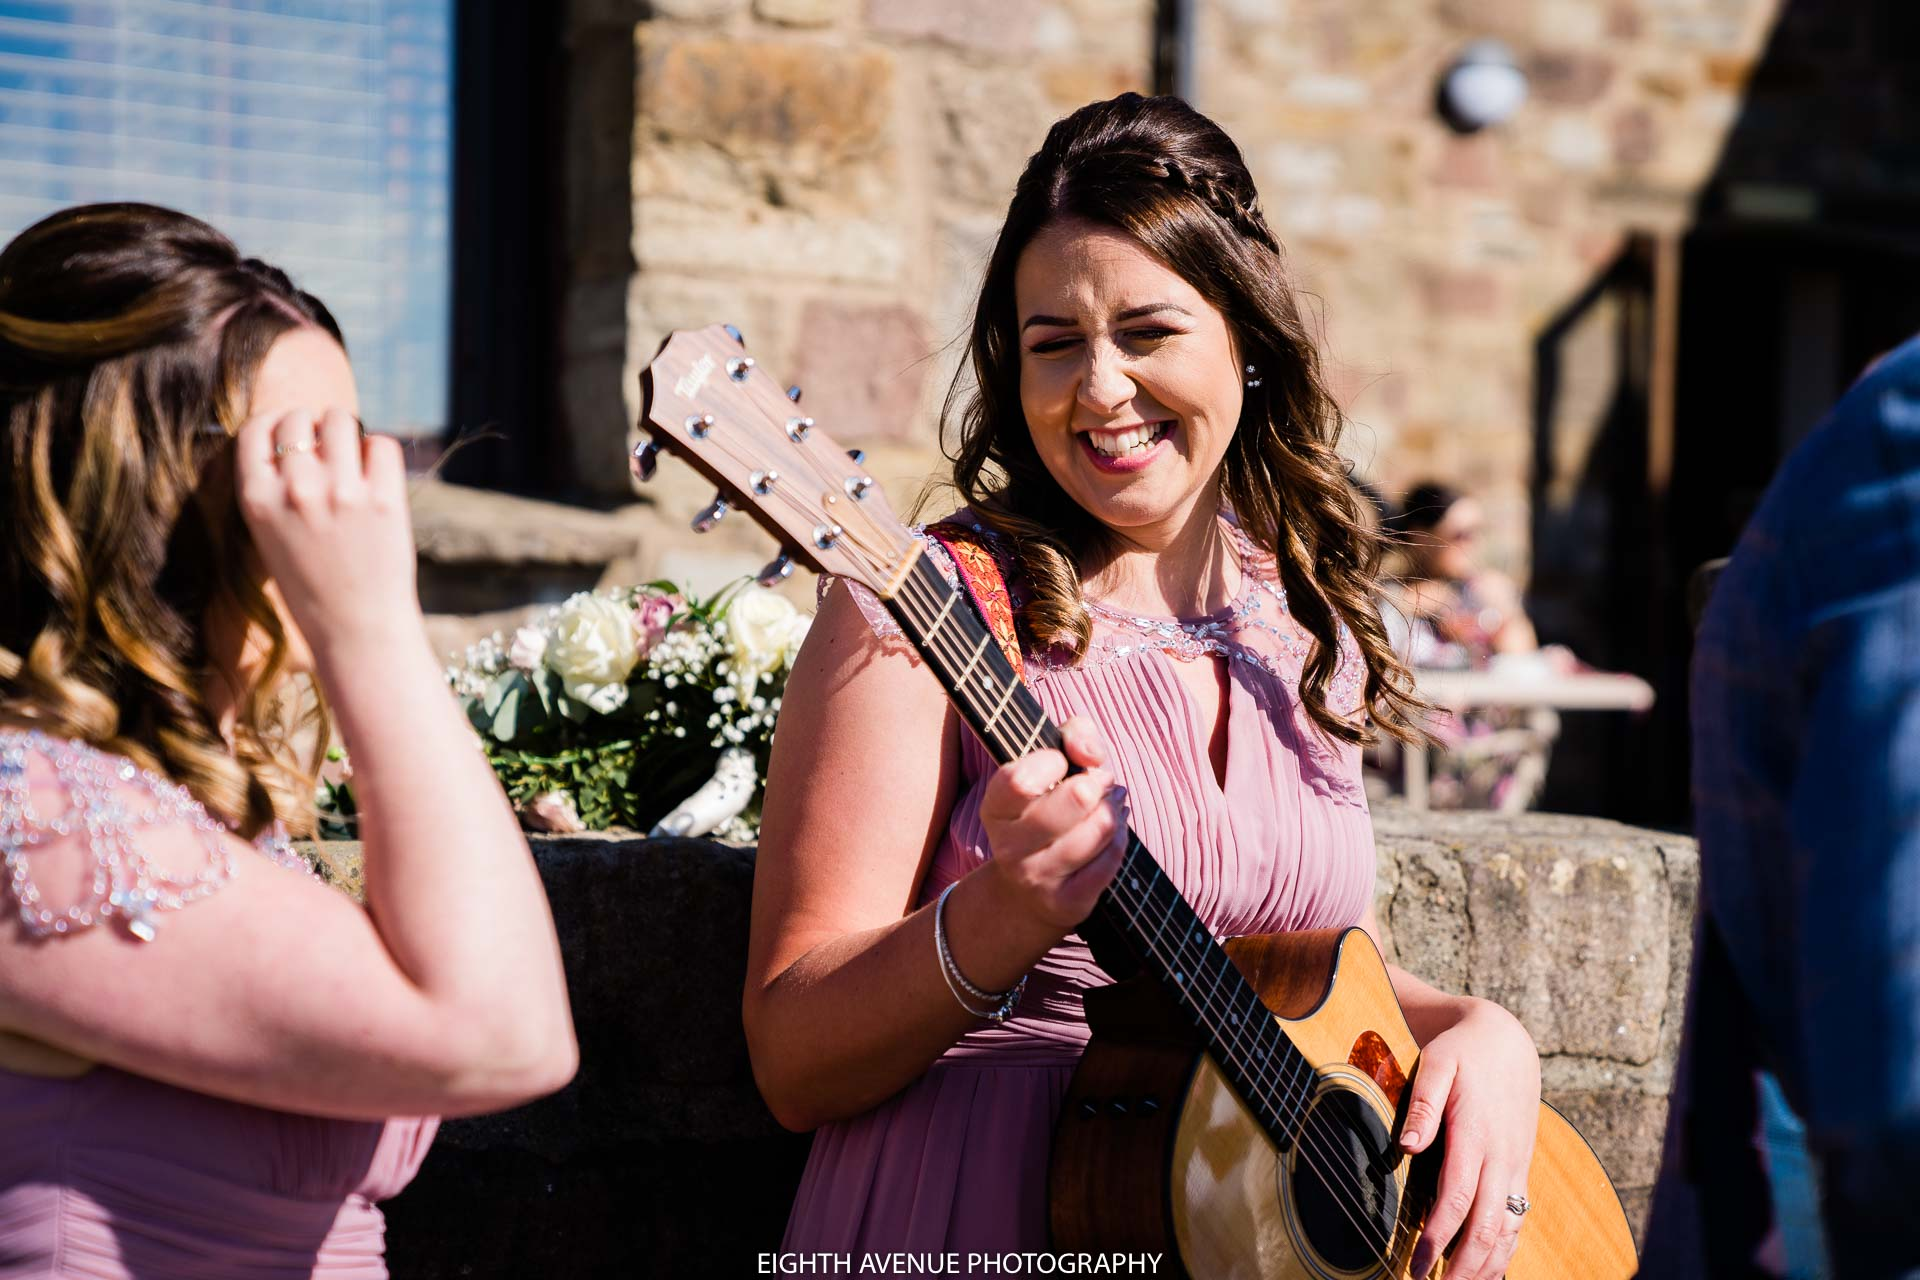 Bridesmaid with guitar